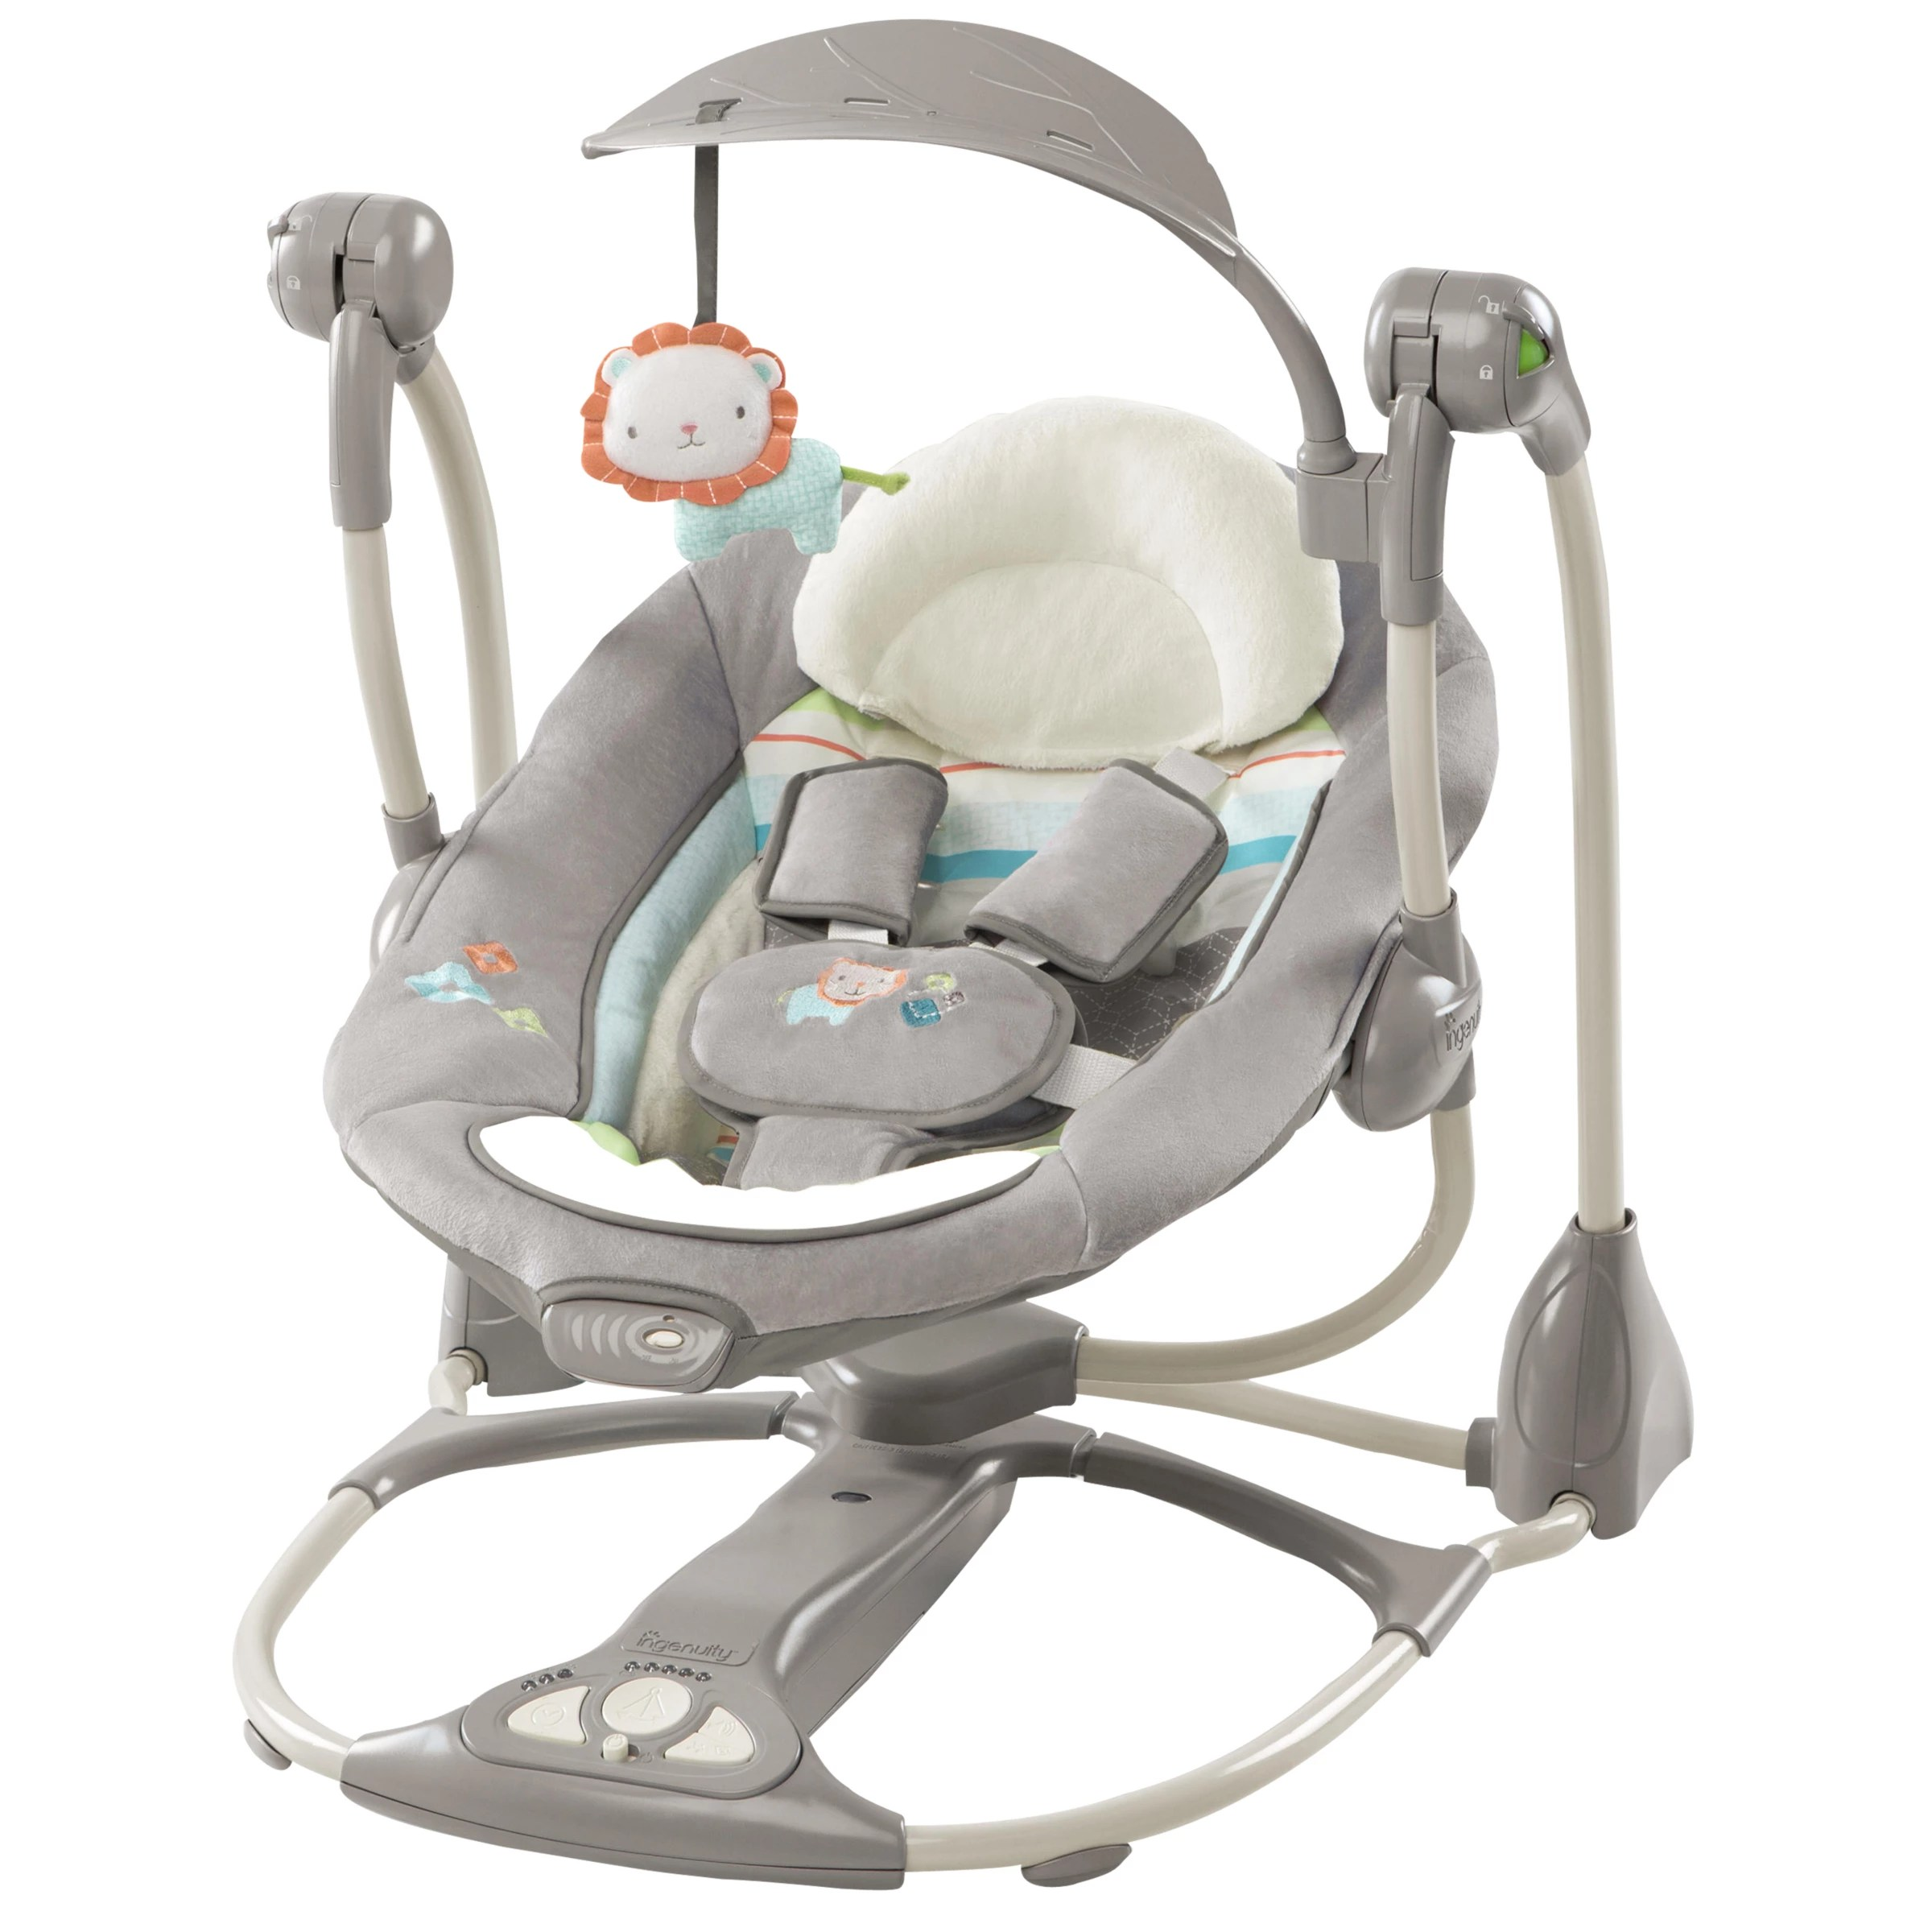 baby swing vibrating chair combo leather sale bouncer rockers swings john lewis partners ingenuity candler convertme 2 seat